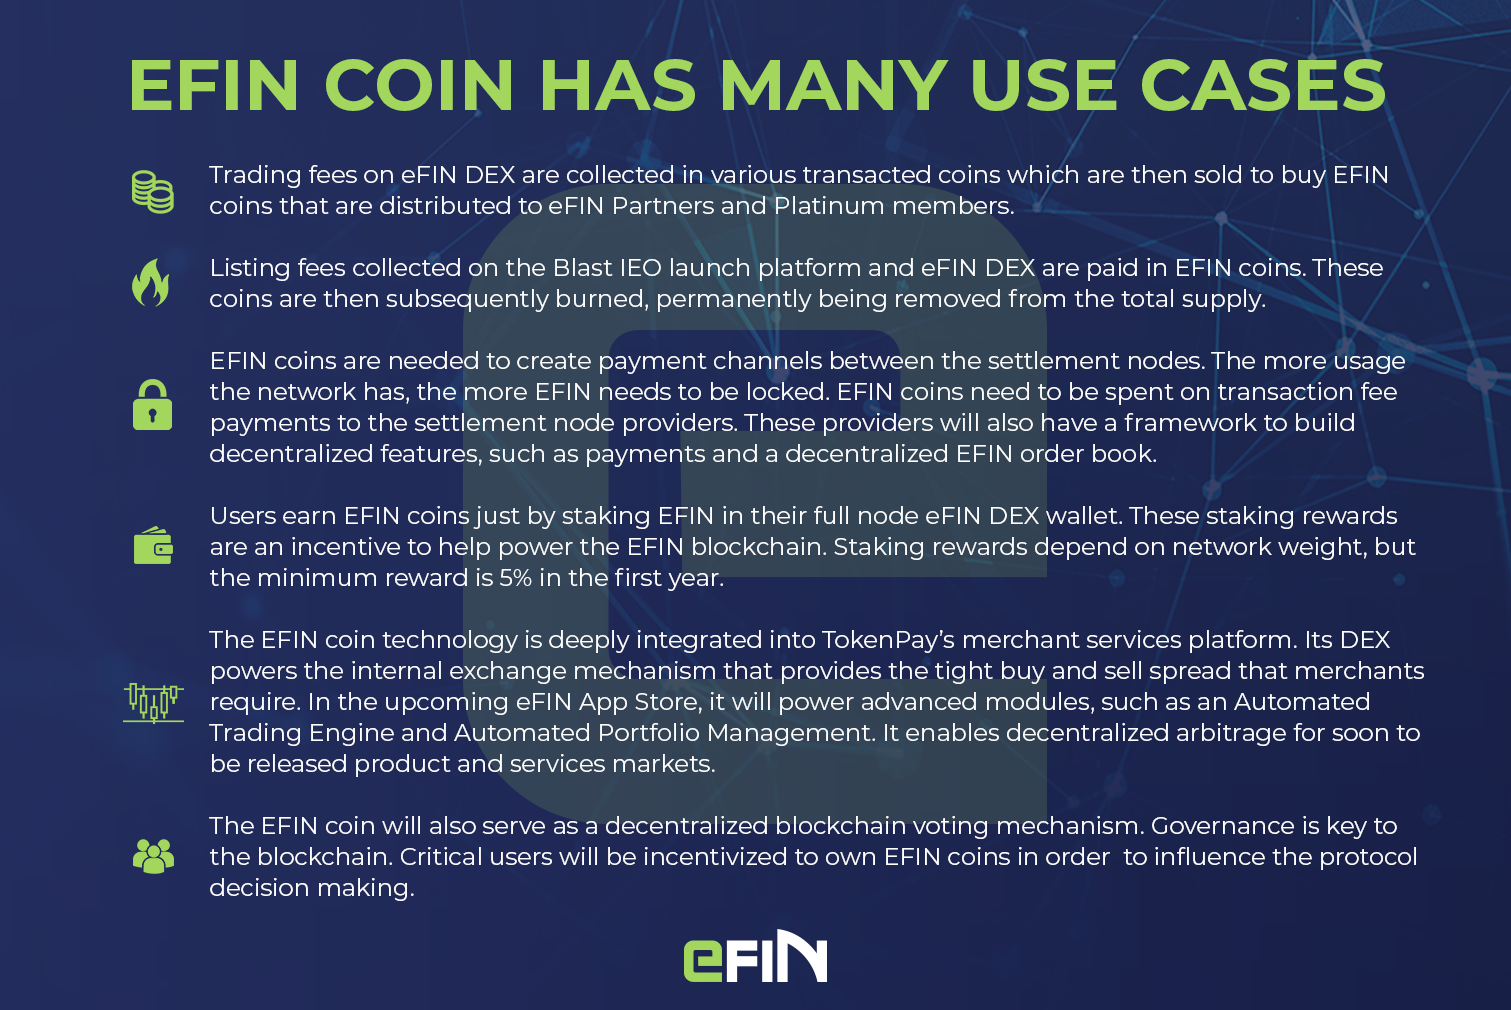 12 Hours Before EFIN Coin Partner Offer Increases in Price